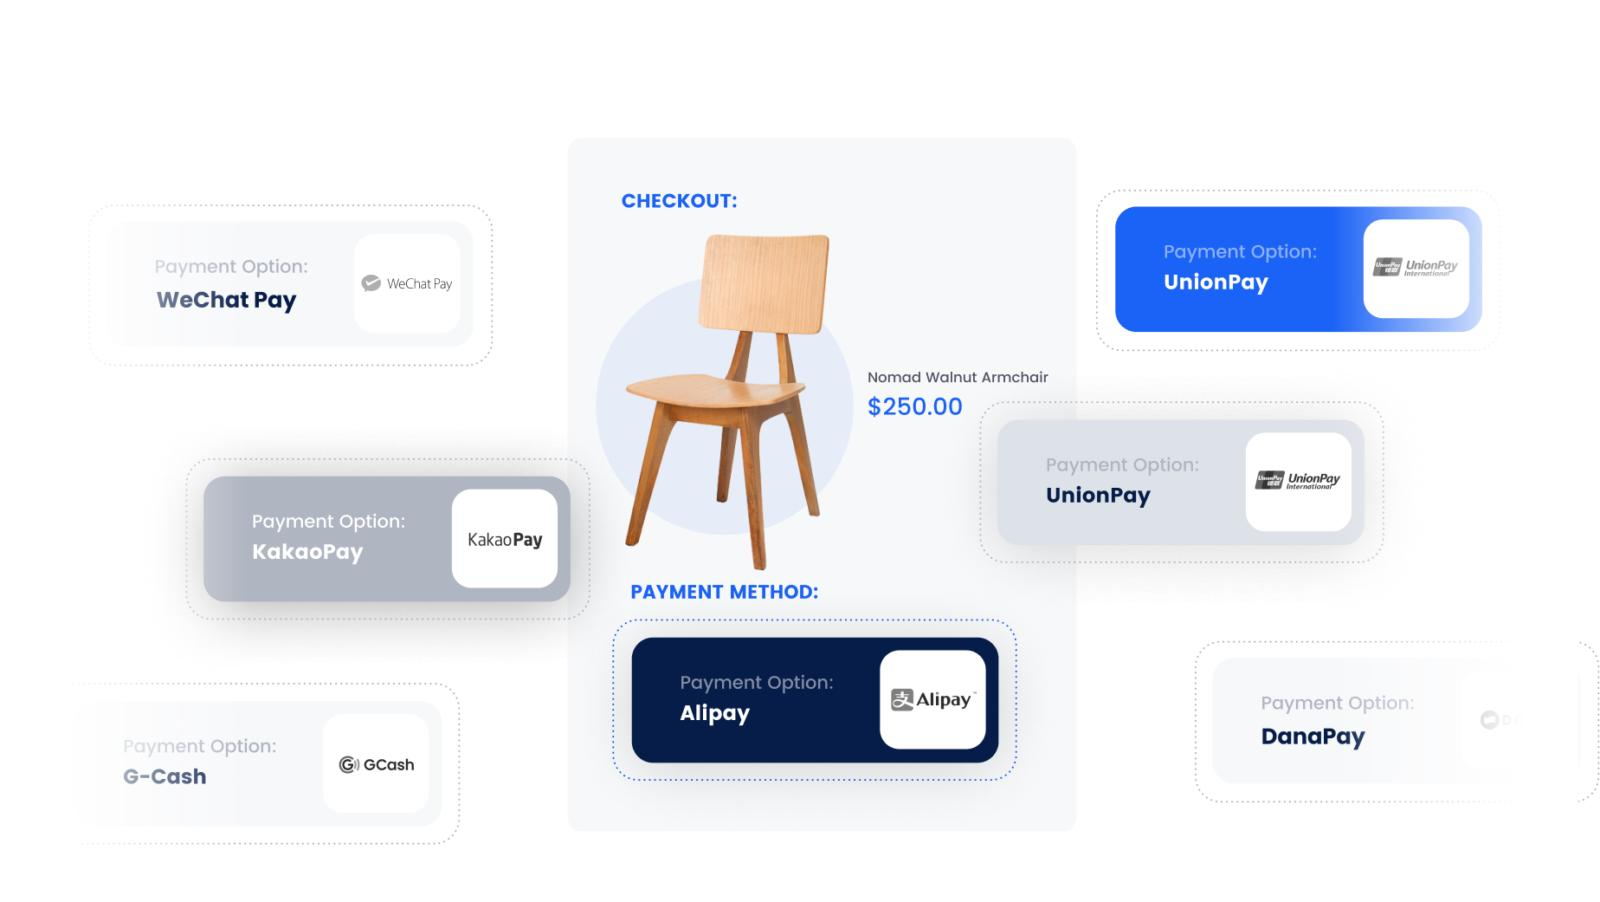 Payment method image